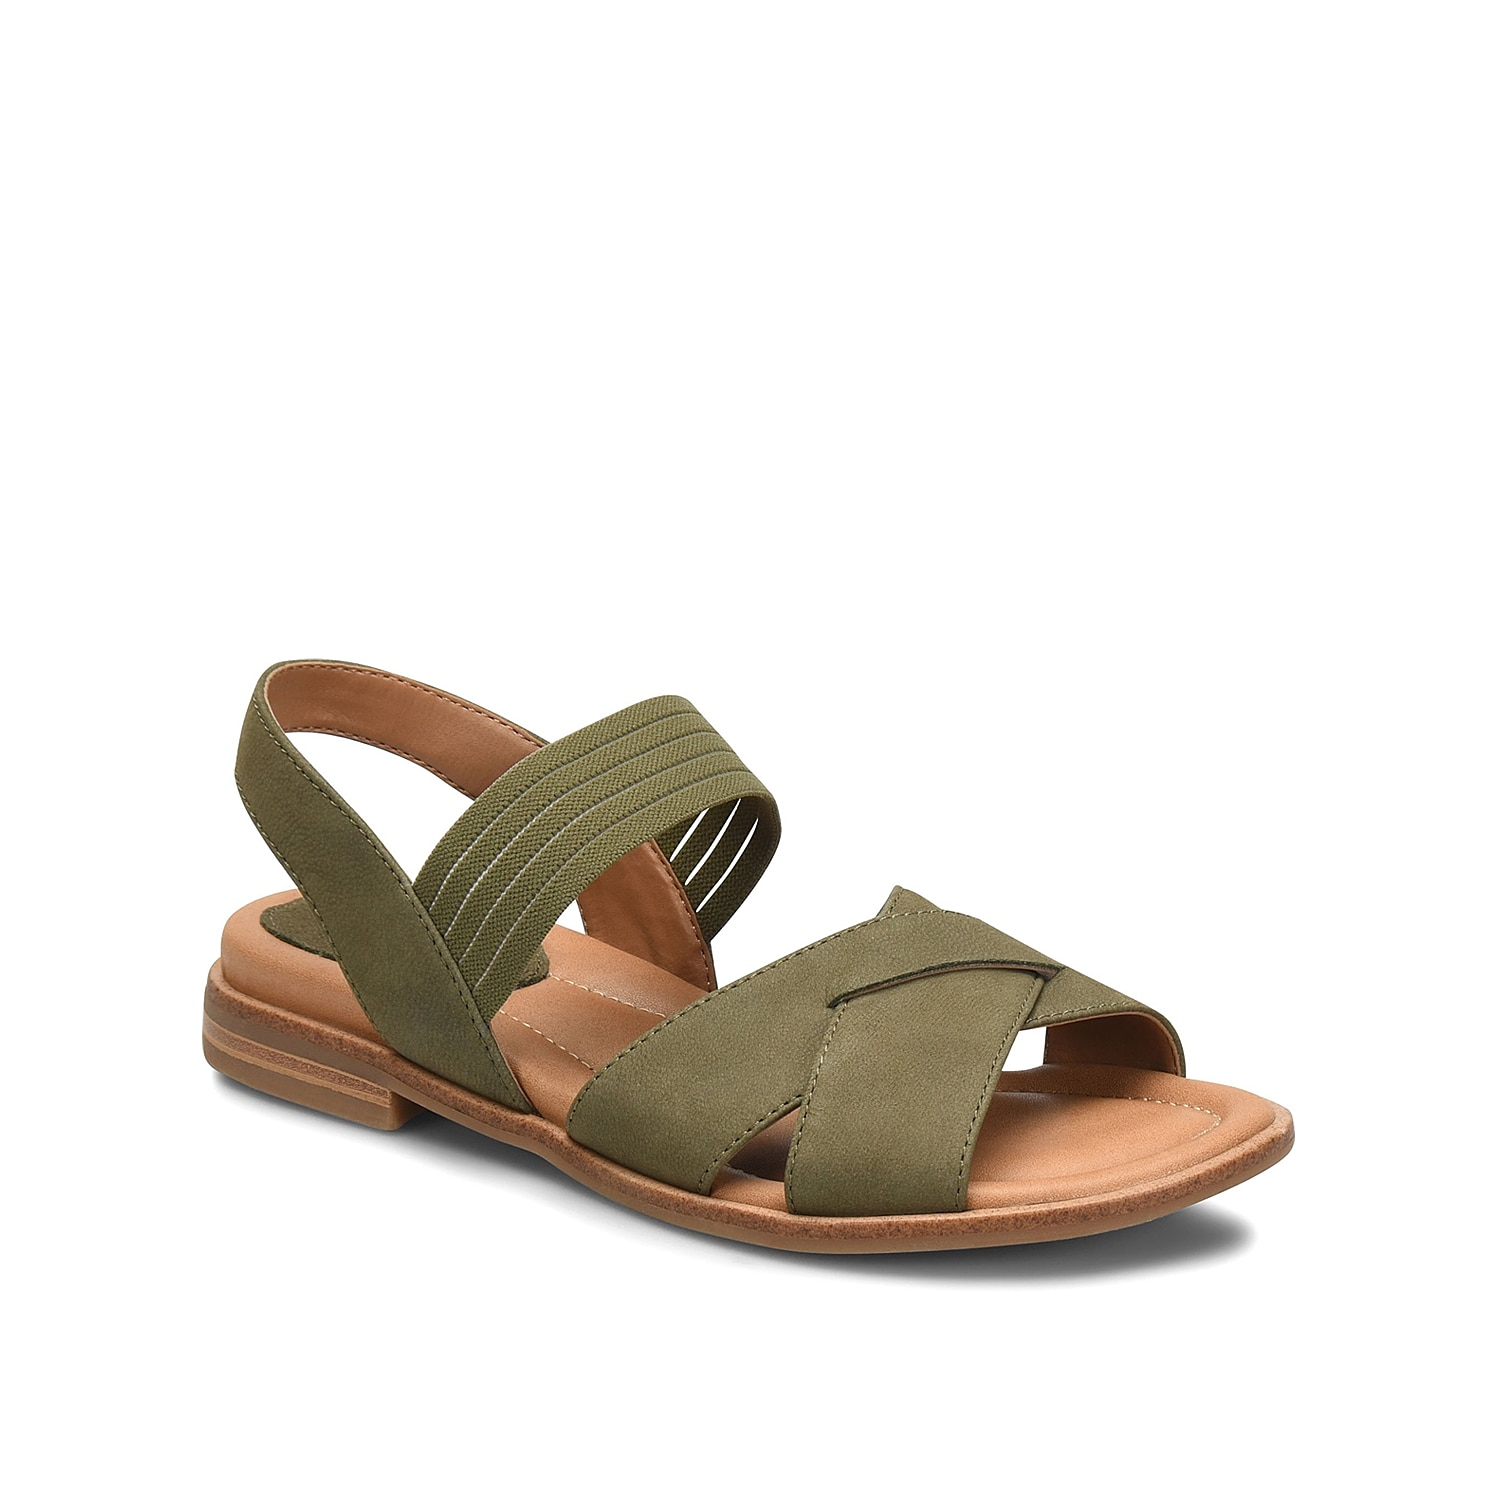 Give off a carefree spirit when styling the Dixie sandal from Comfortiva. This silhouette is fashioned with smooth leather and a cushioned footbed for relaxing steps.